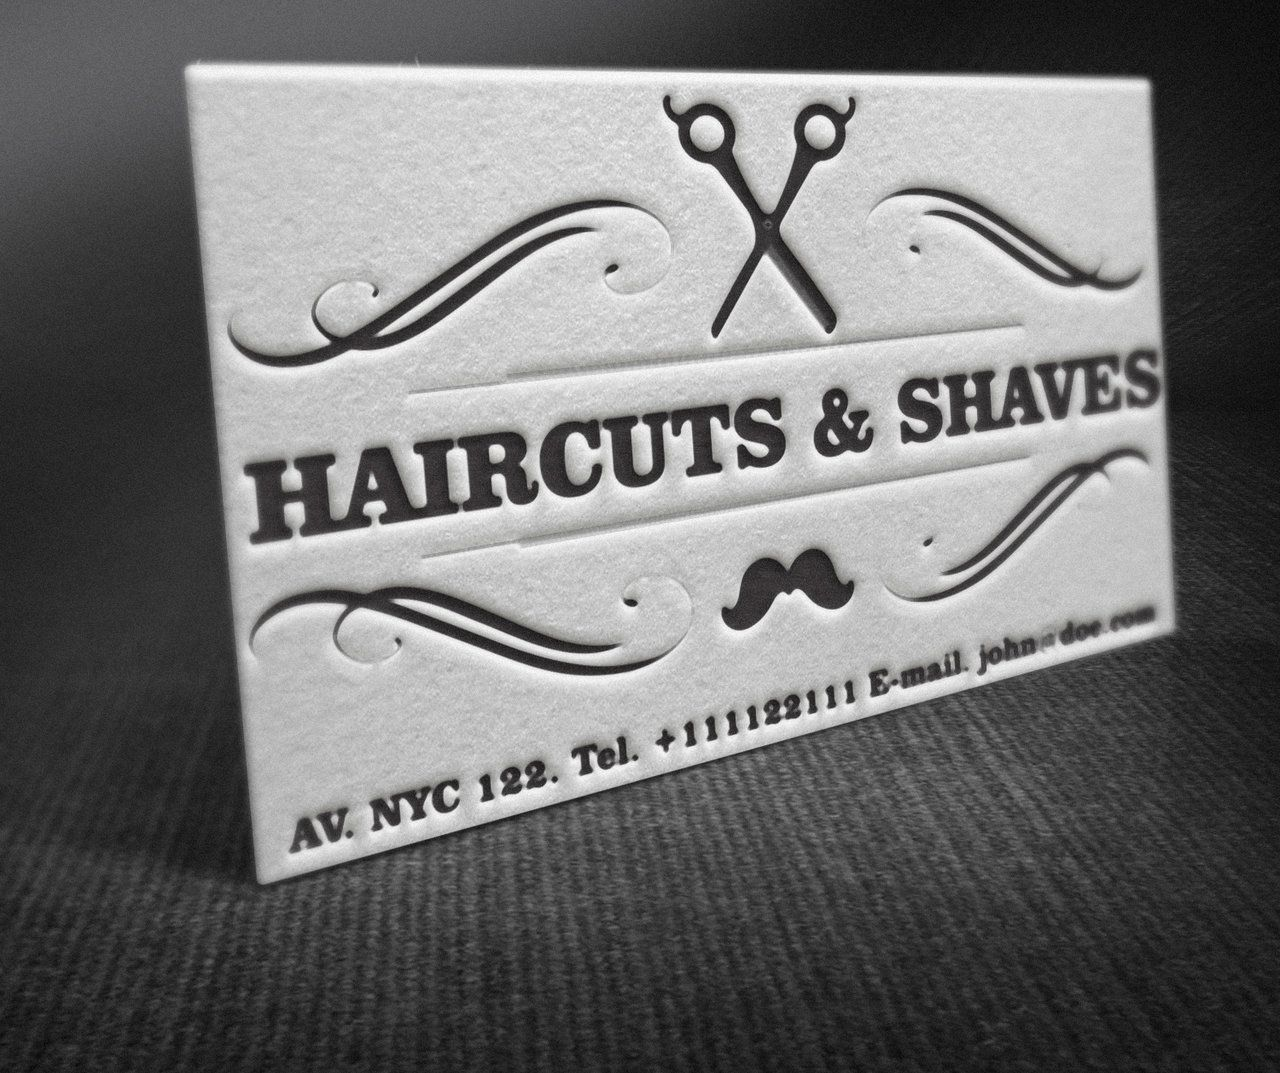 Letterpress Barber Shop Business Cards by BorceMarkoski on ...